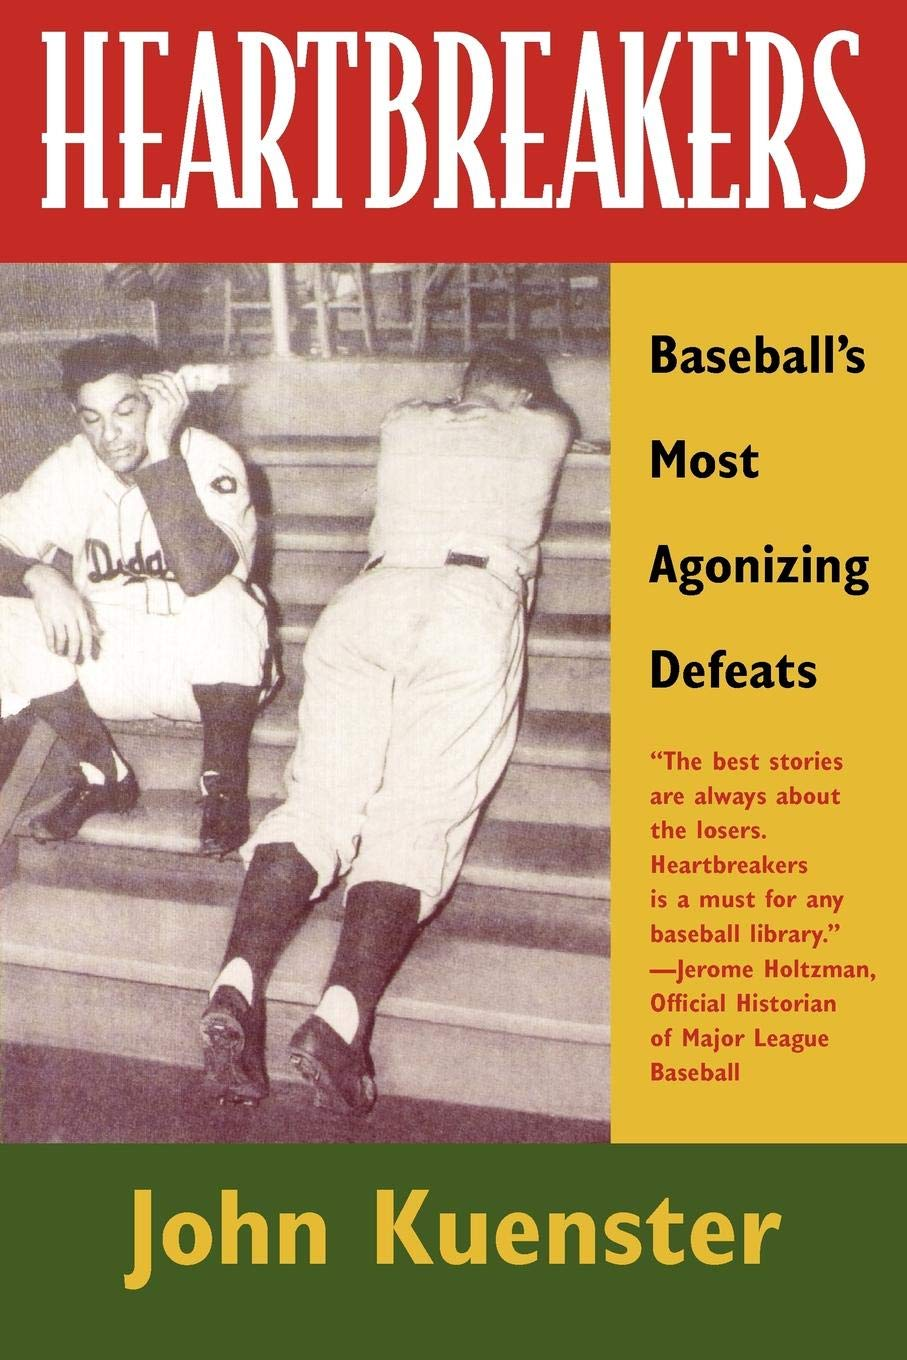 Download Heartbreakers: Baseball's Most Agonizing Defeats PDF